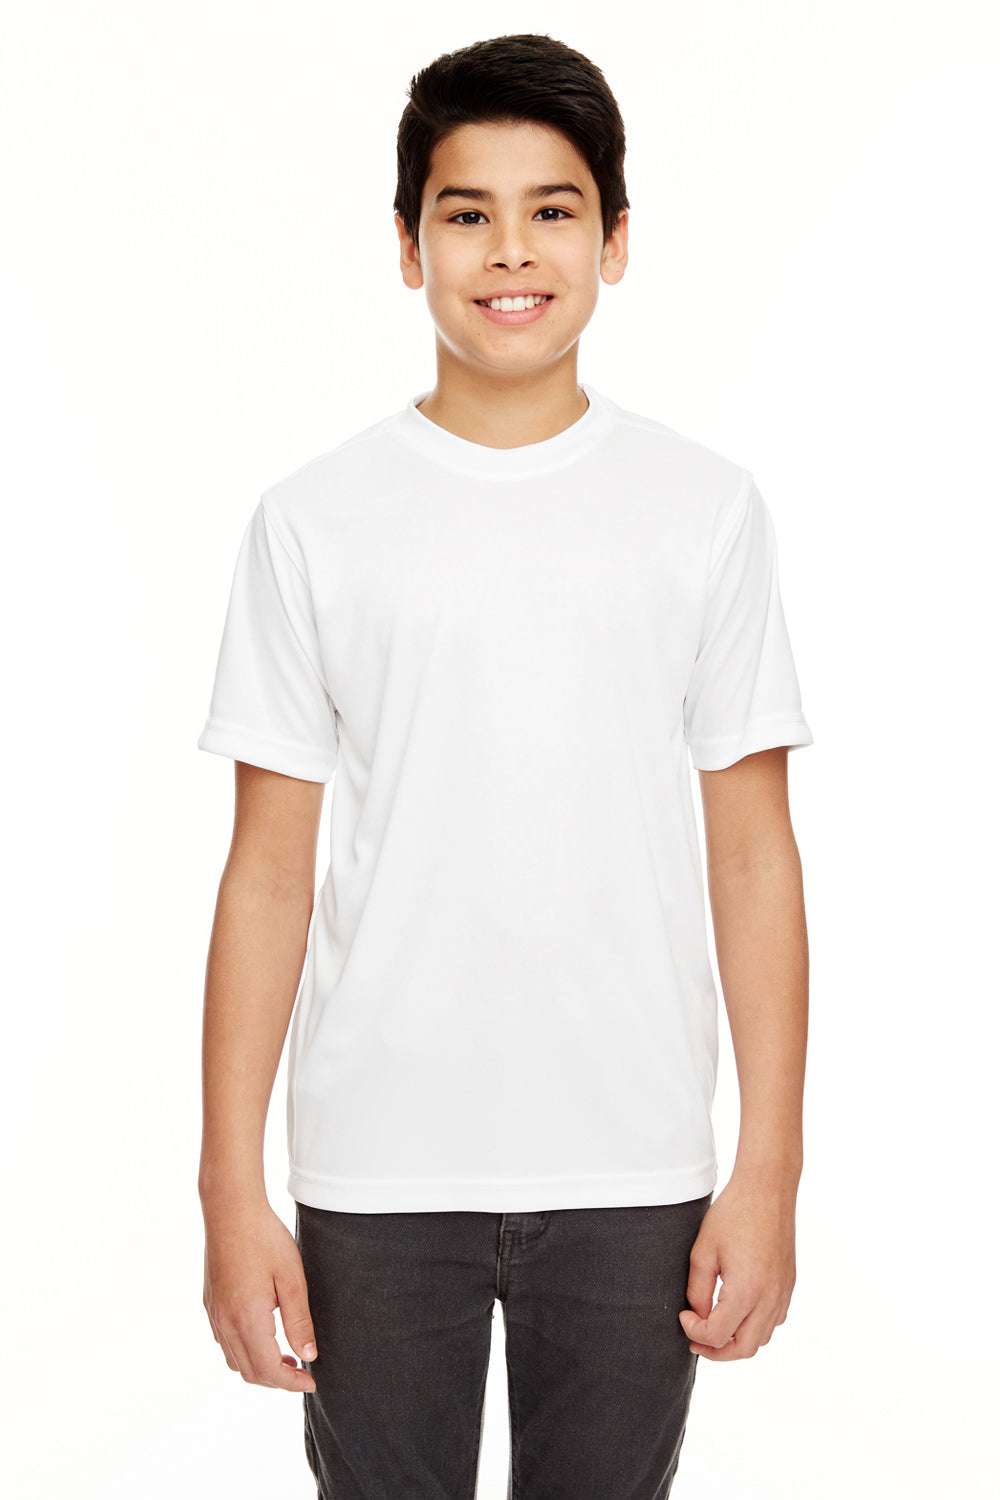 UltraClub 8620Y Youth Cool & Dry Performance Moisture Wicking Short Sleeve Crewneck T-Shirt White Front